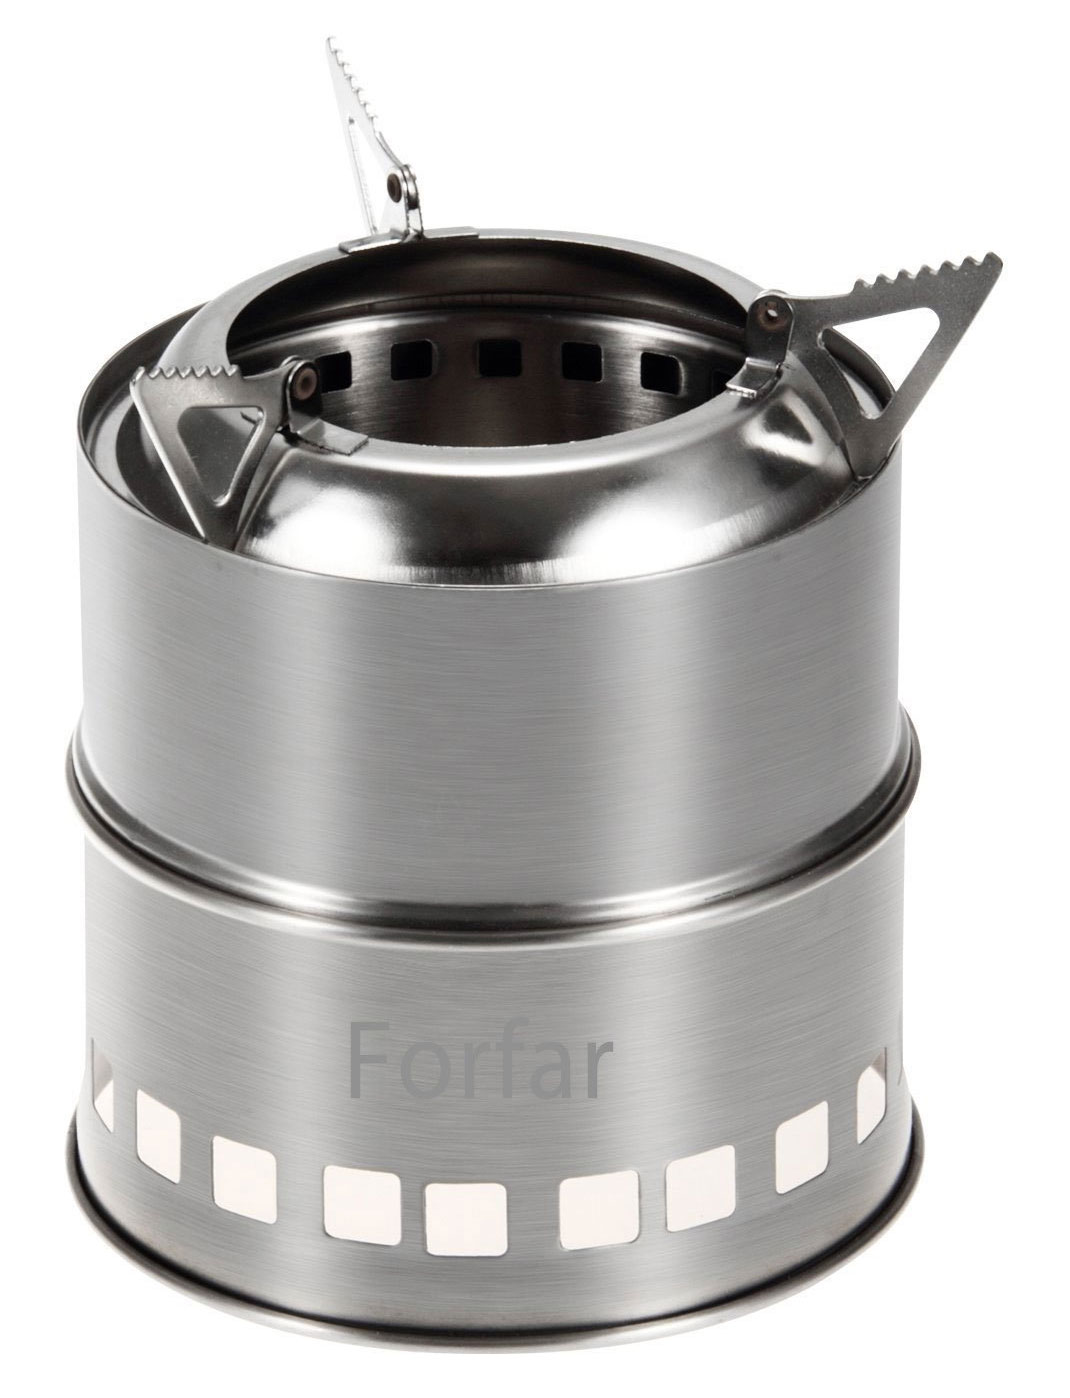 Forfar camping stove portable stoves stainless steel stove charcoal solidified alcohol wood camp stove best camp stove for trekking guide